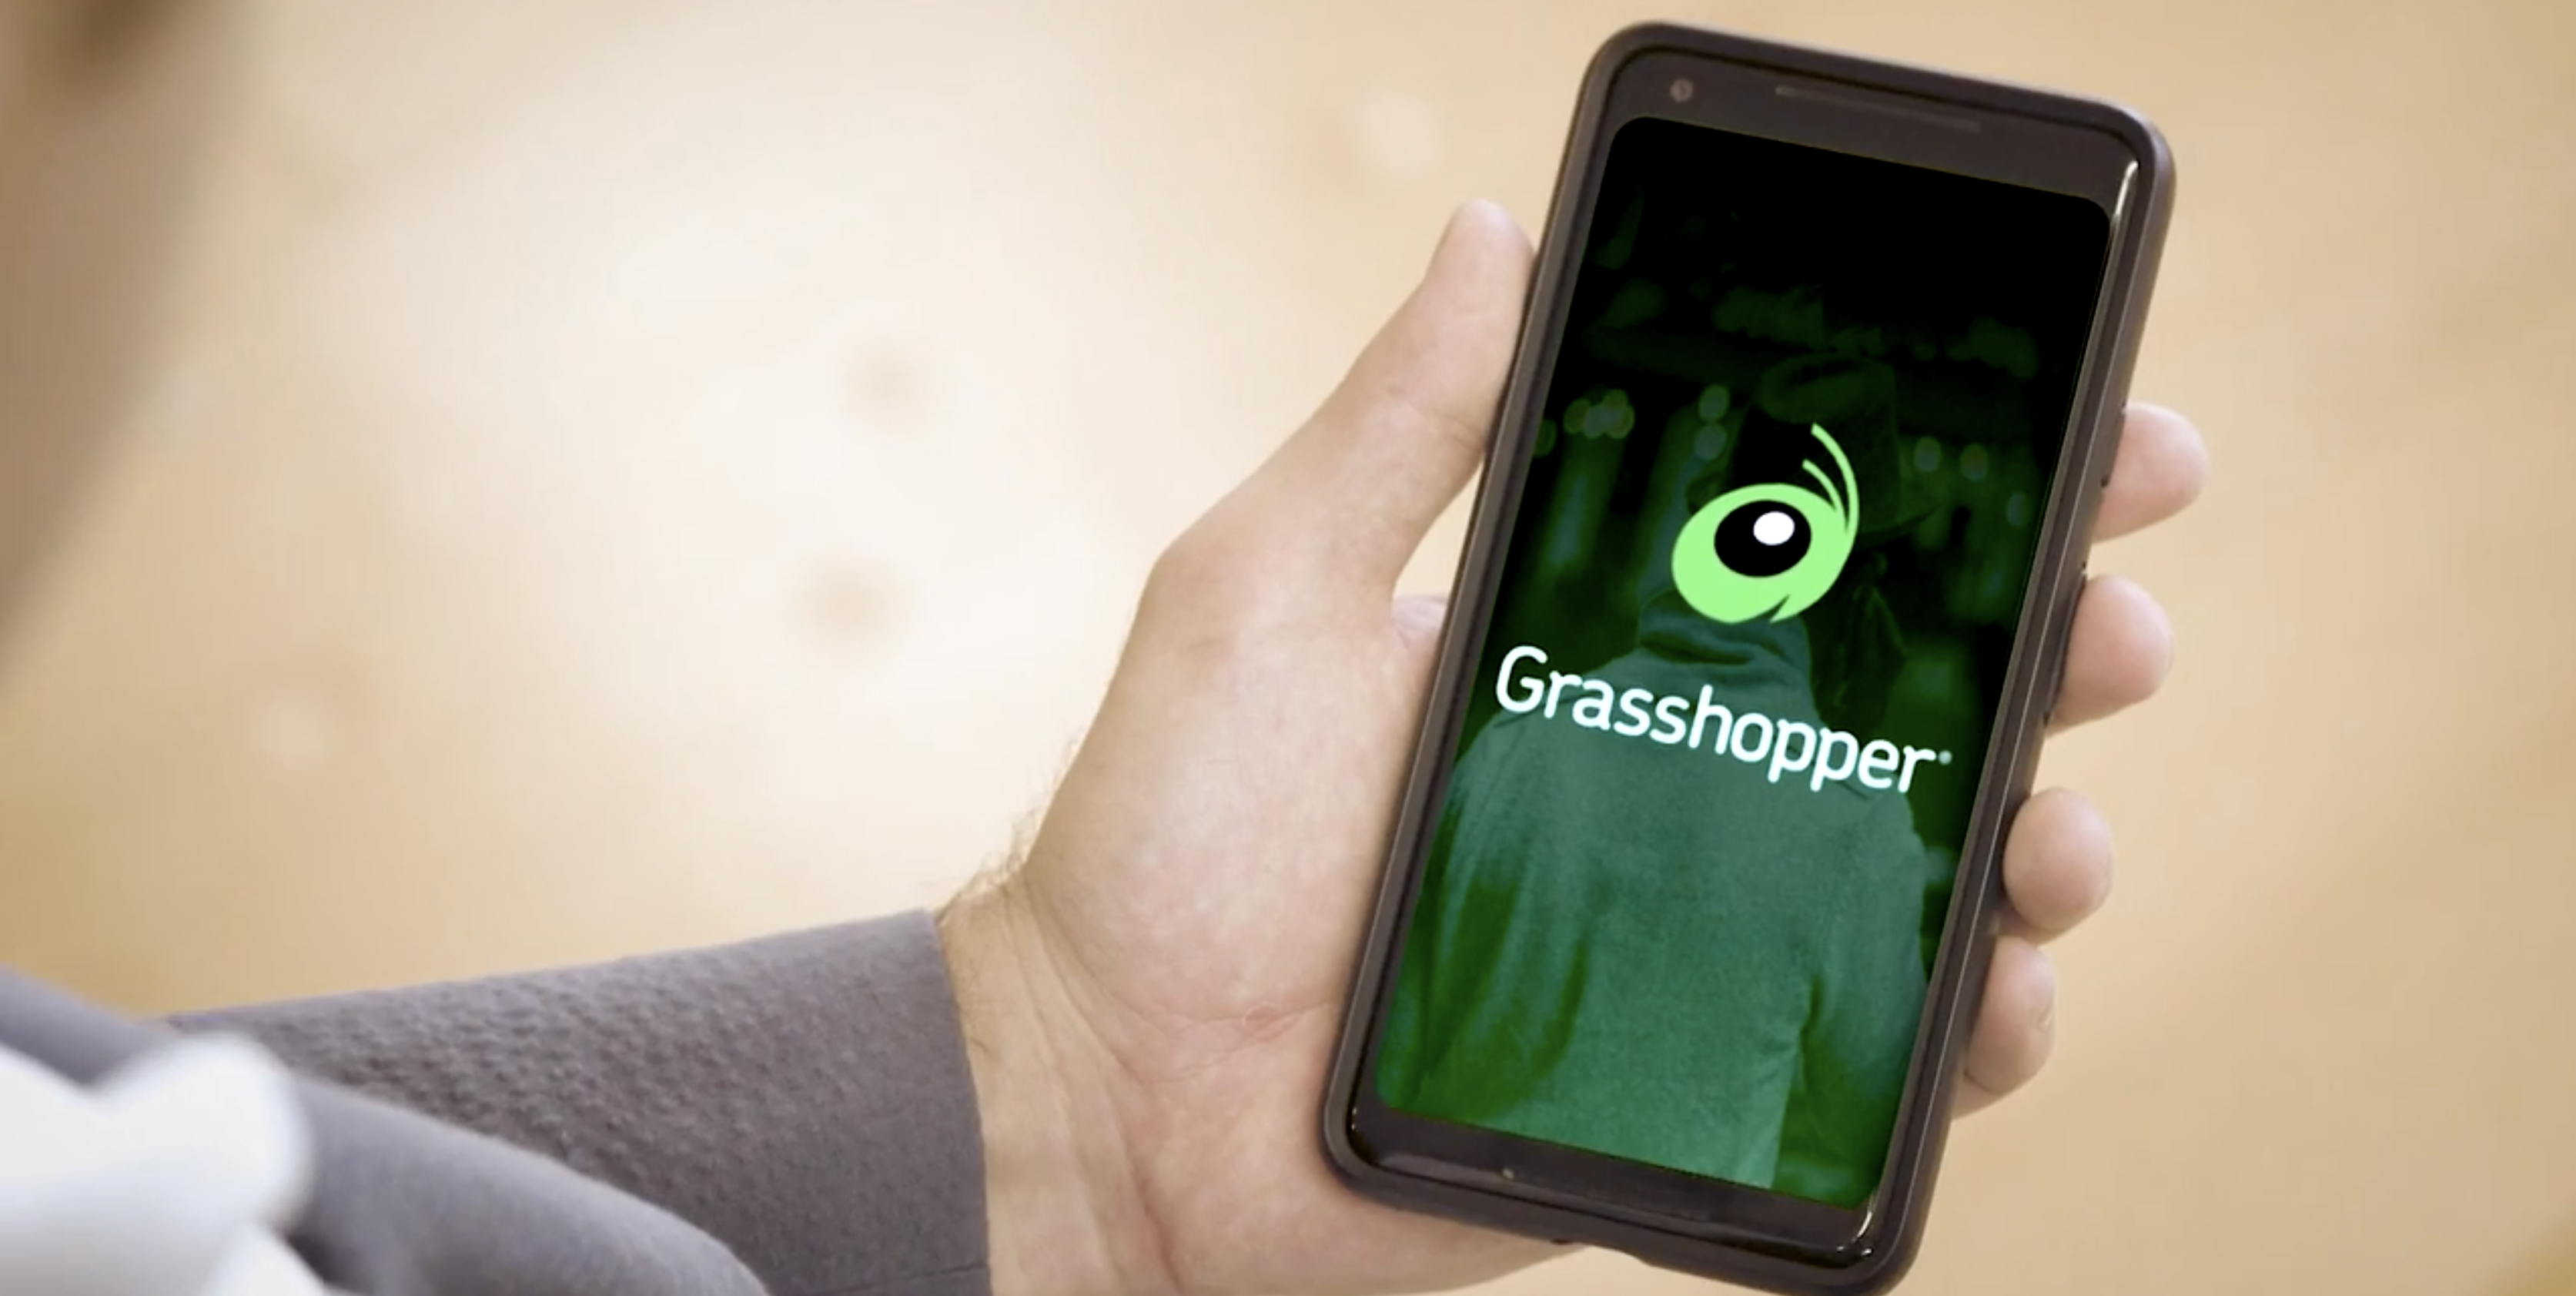 Example of Grasshopper on phone